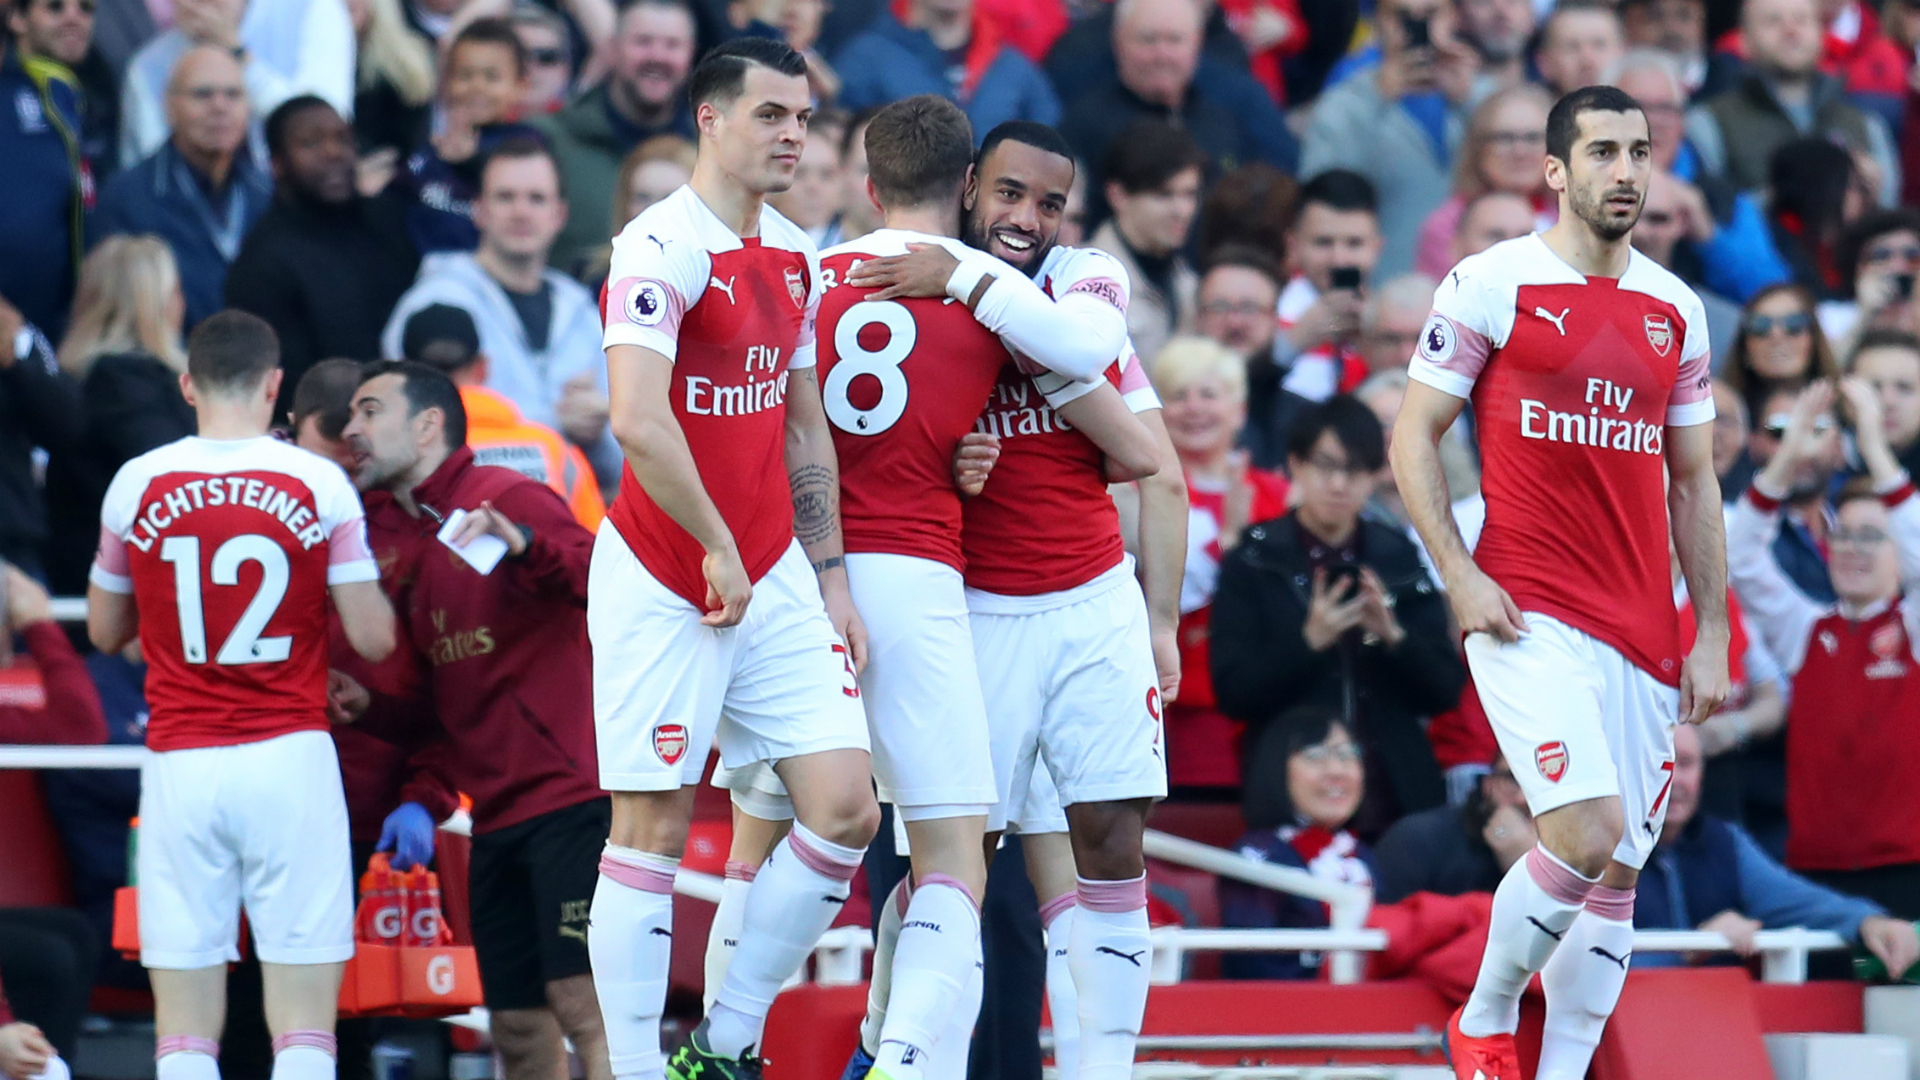 Arsenal taking it 'step by step' in race for fourth - Emery